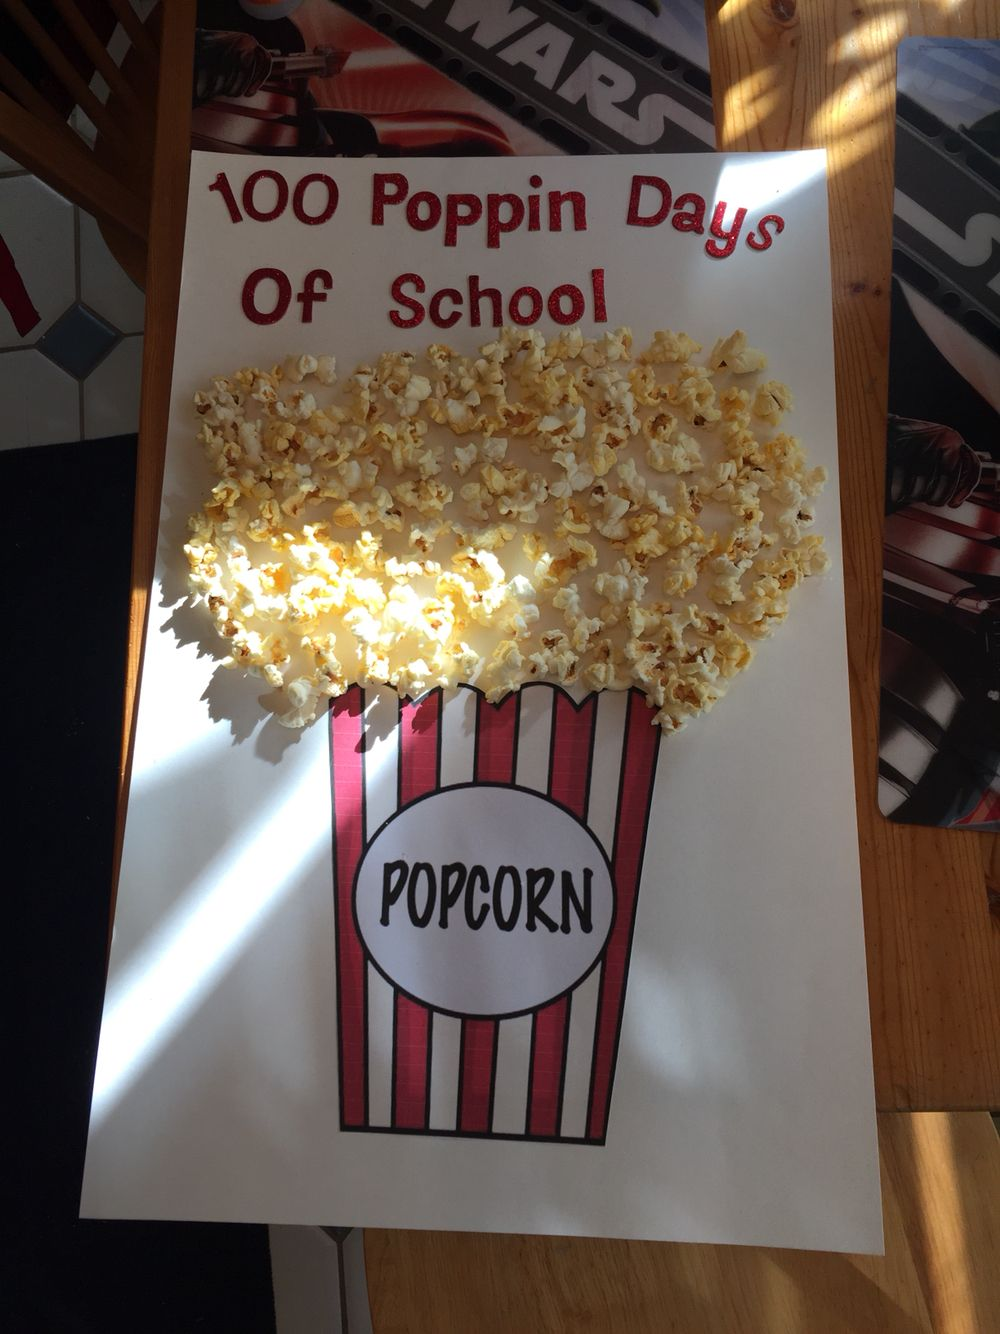 74ad1ee1a 100th day of school project! (100 pieces of popcorn) | School | 100 ...